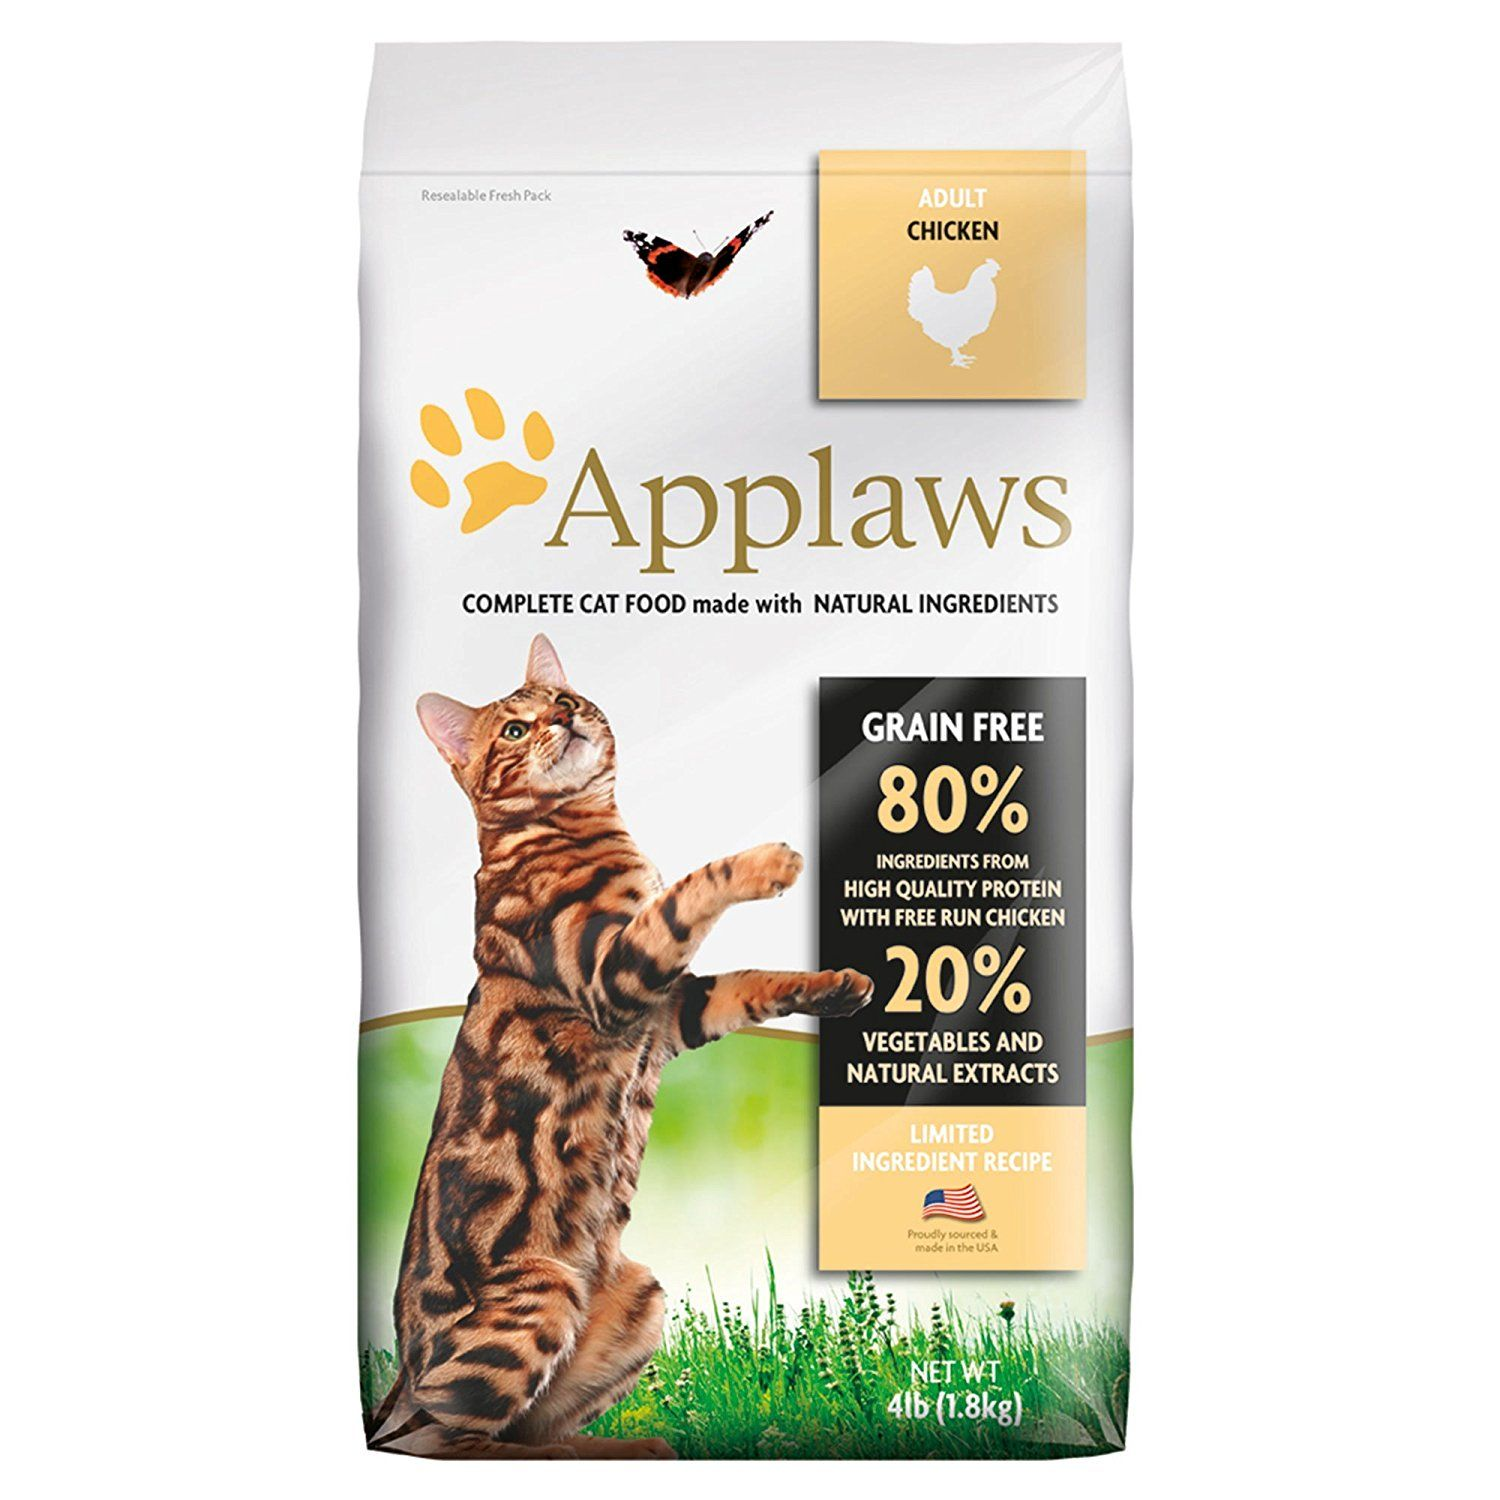 Applaws Chicken Grain Free Dry Cat Food 4 Lb You Can Get